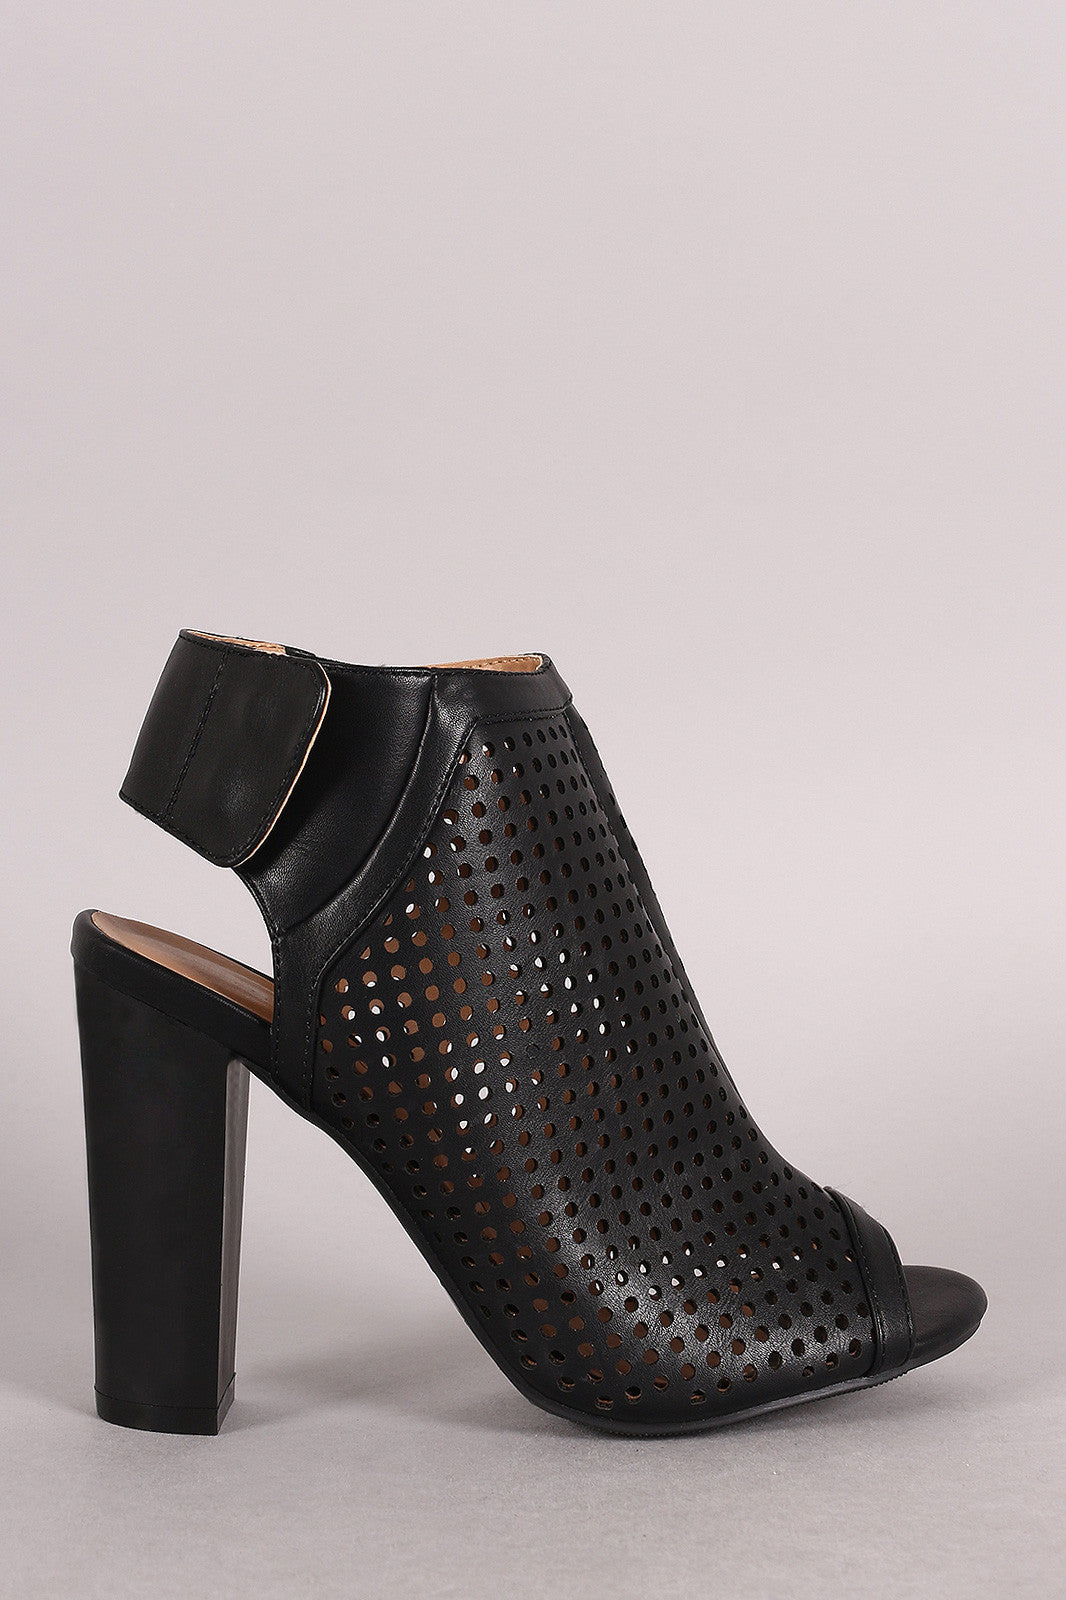 Bamboo Perforated Peep Toe Chunky Mule Heel - Thick 'N' Curvy Shop - 4